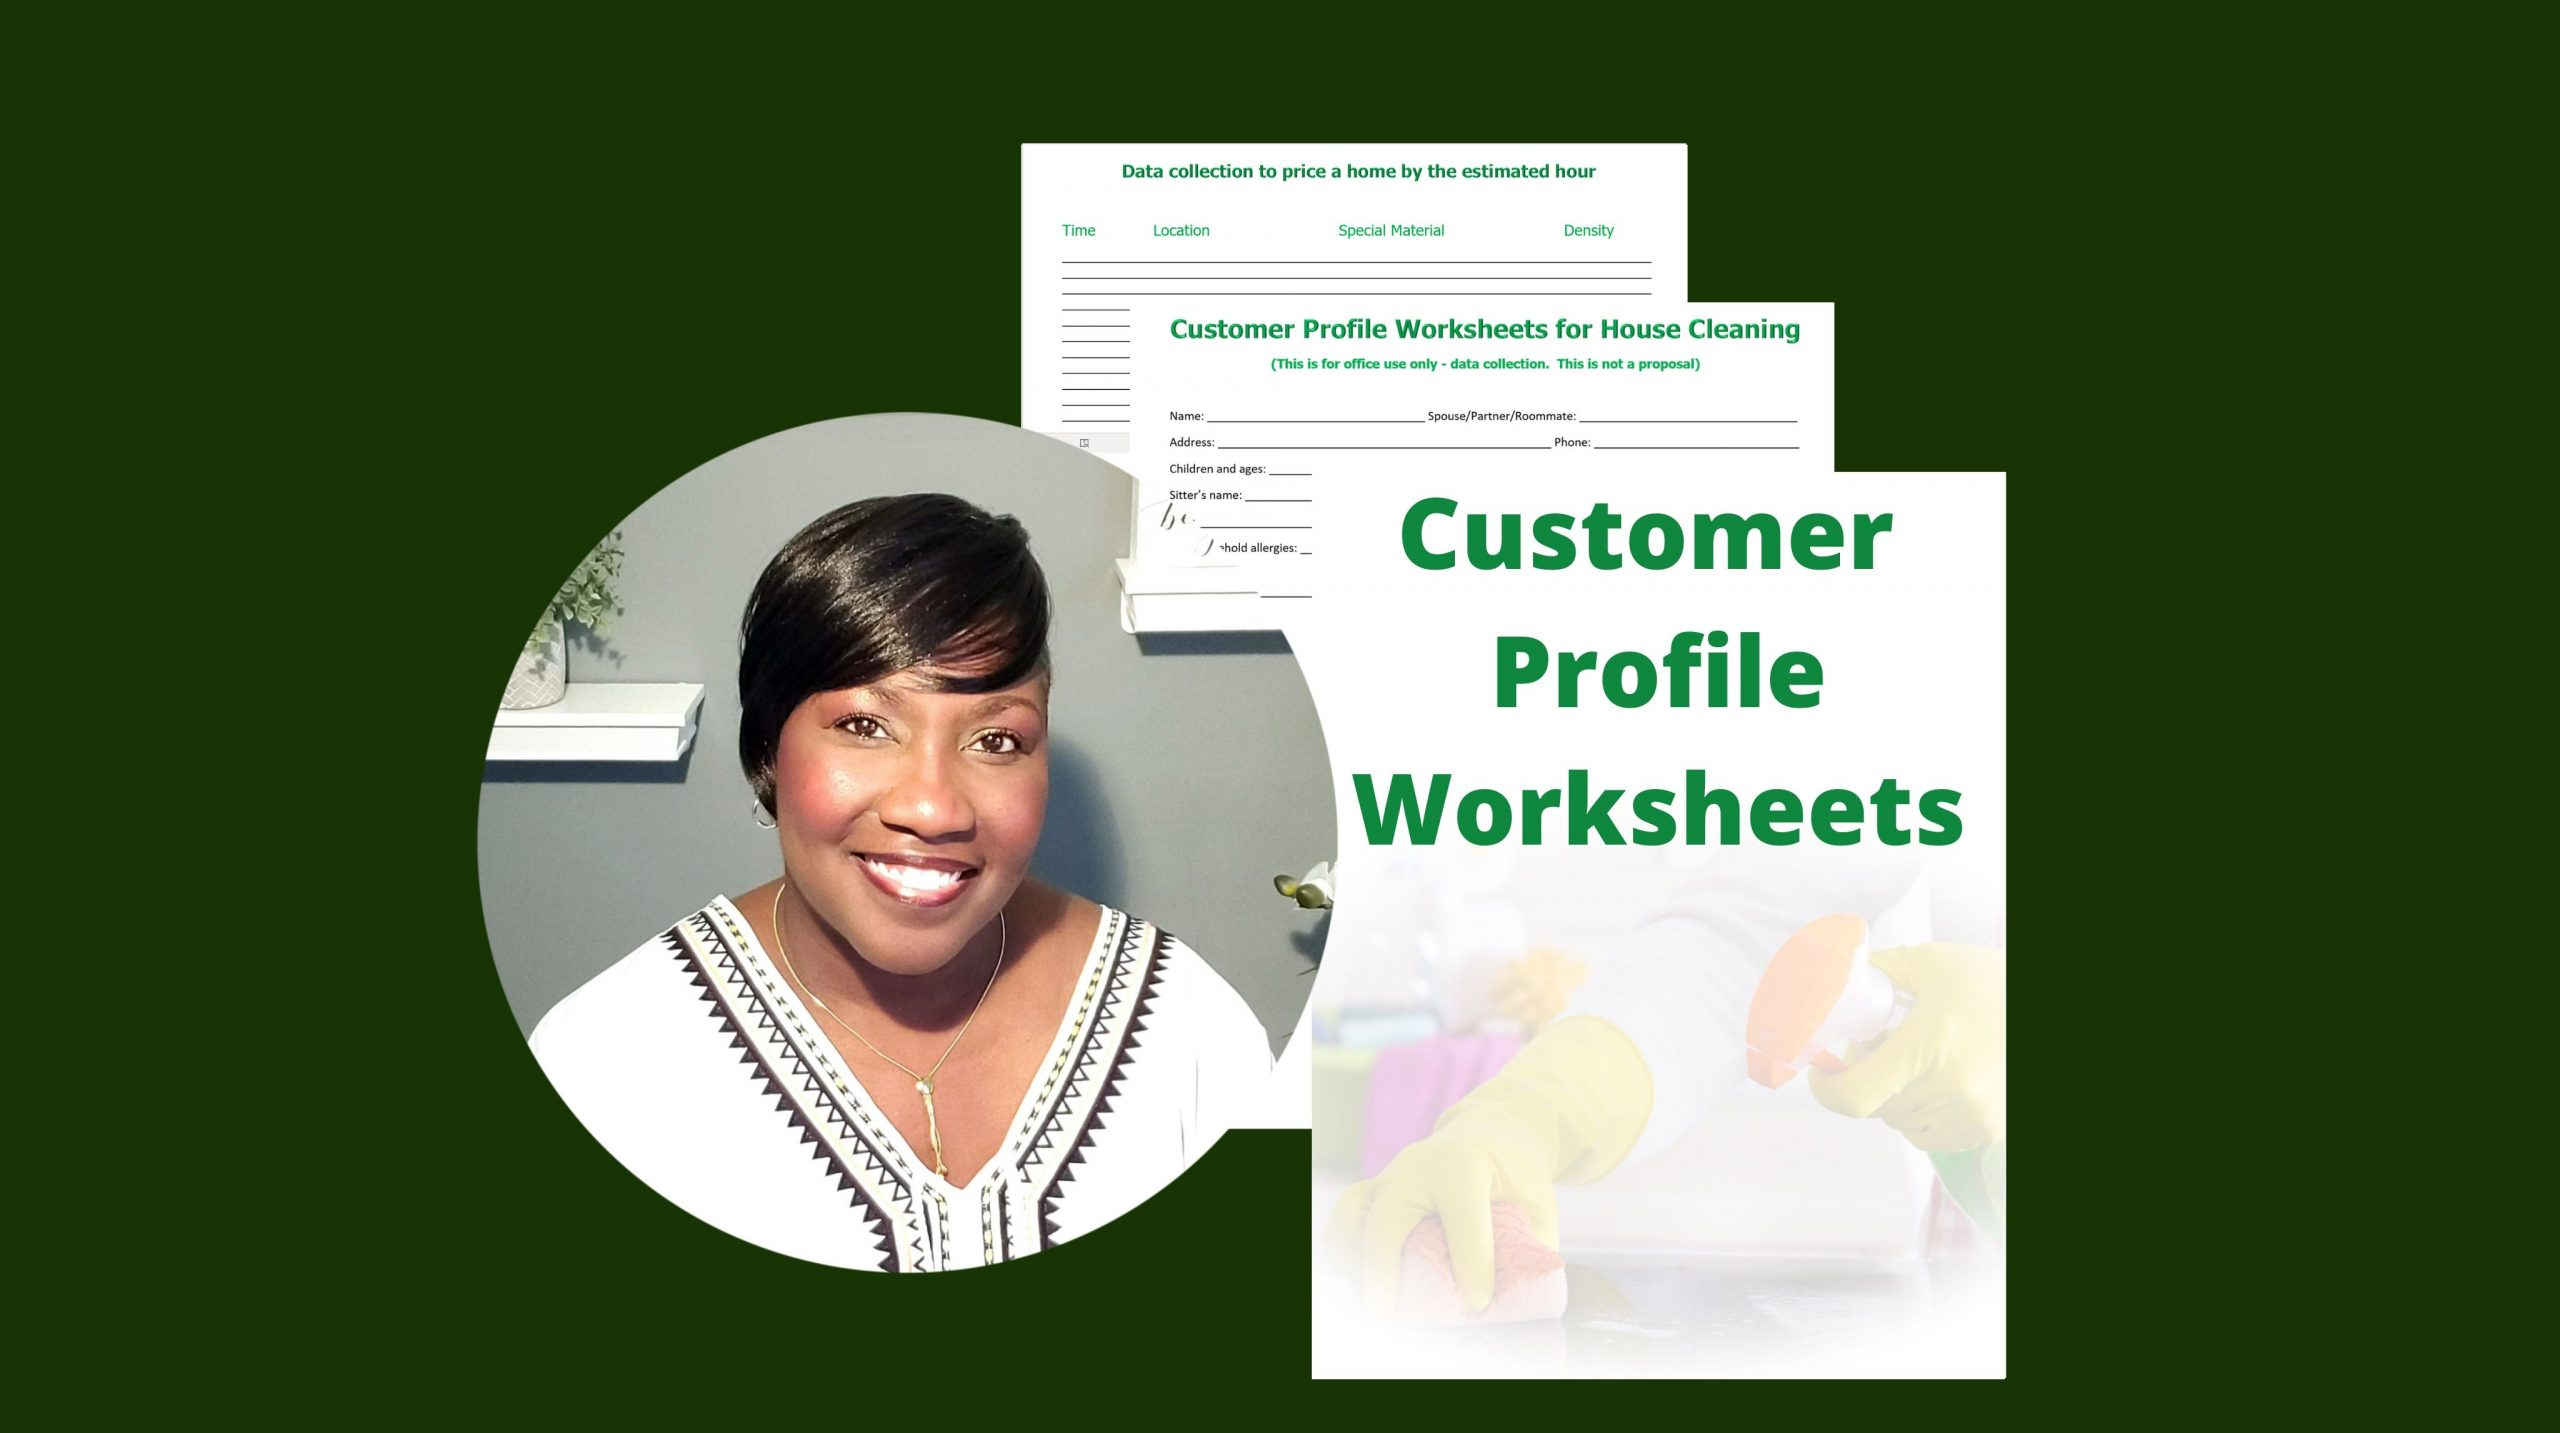 Customer Profile Worksheet For House Cleaning